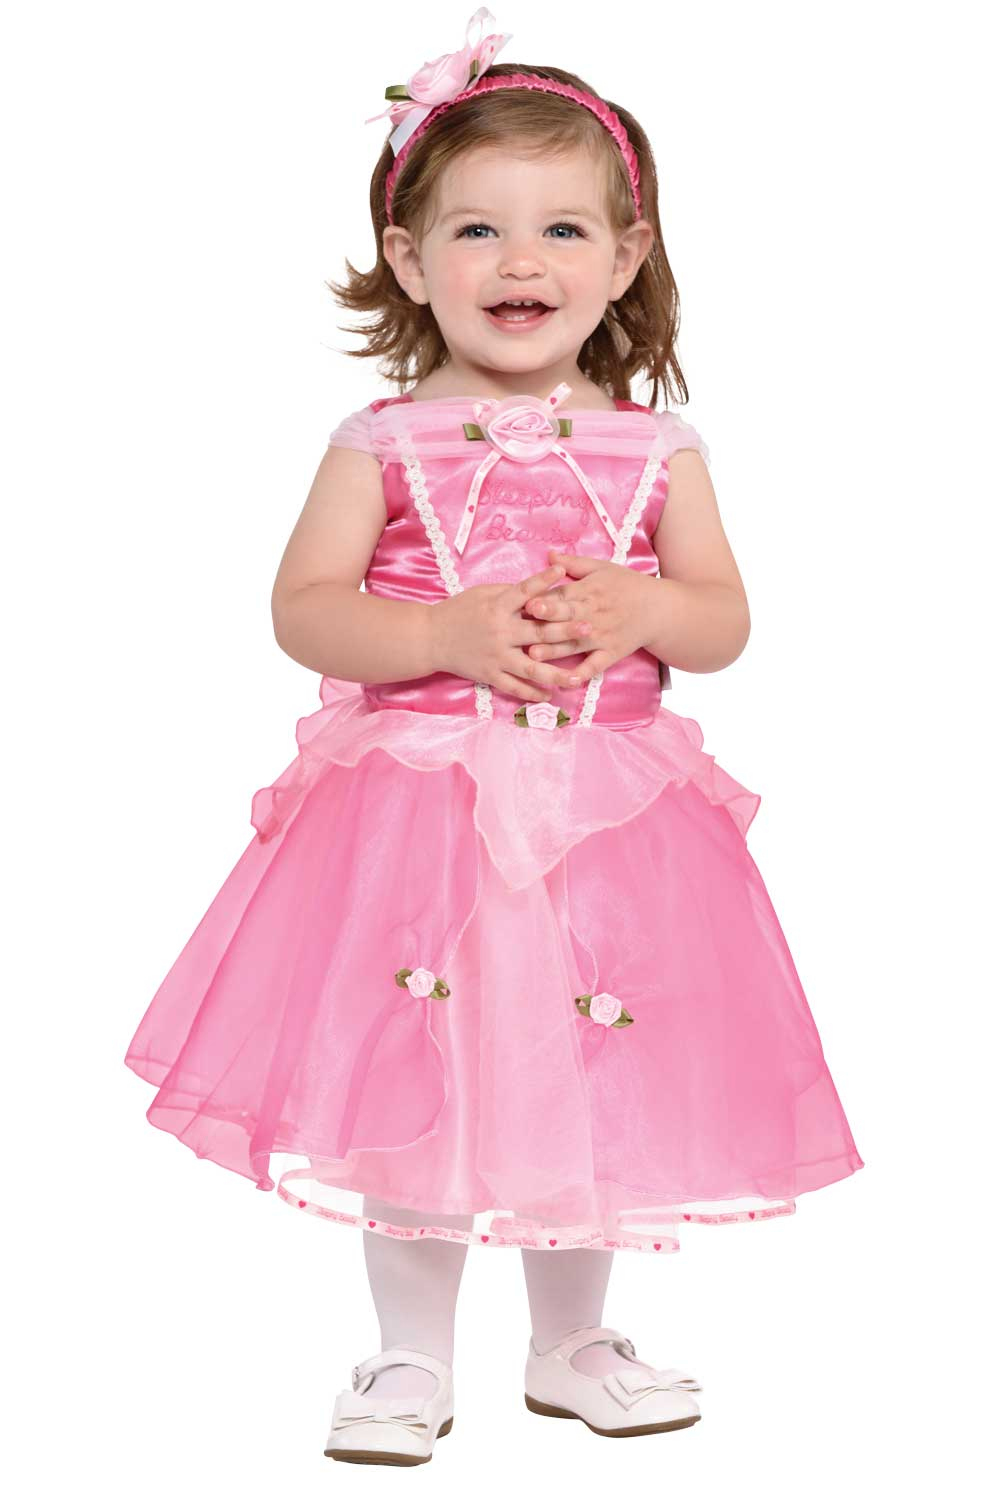 Whether it's for one of their classmates' parties, Halloween, another festive event or simply just for fun, we have a number of costumes for your child! Browse by all or by costumes for girls, boys or babies.